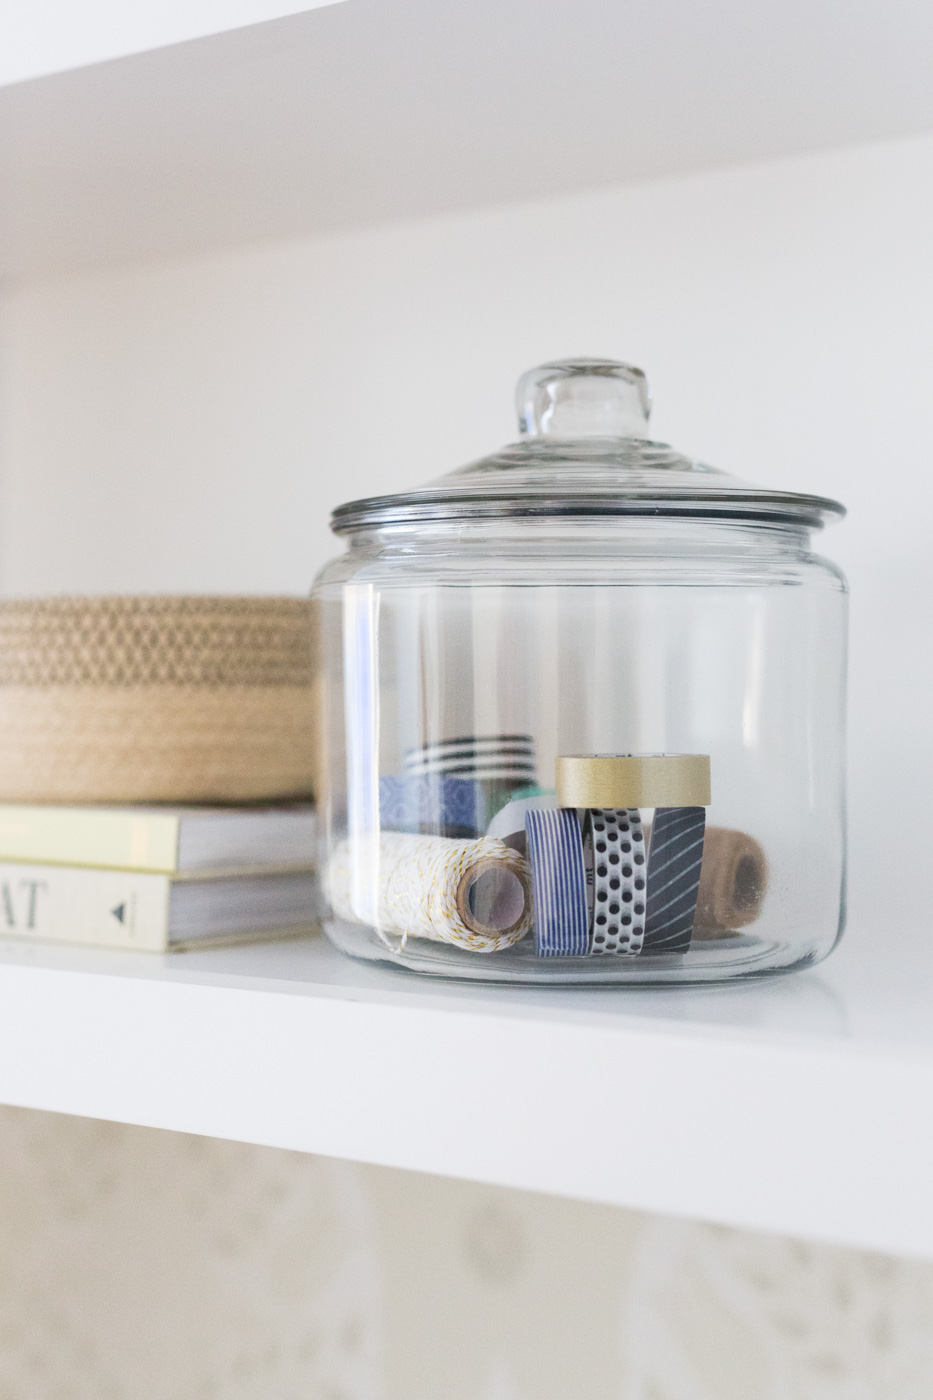 Glass jar decoration on shelves in office